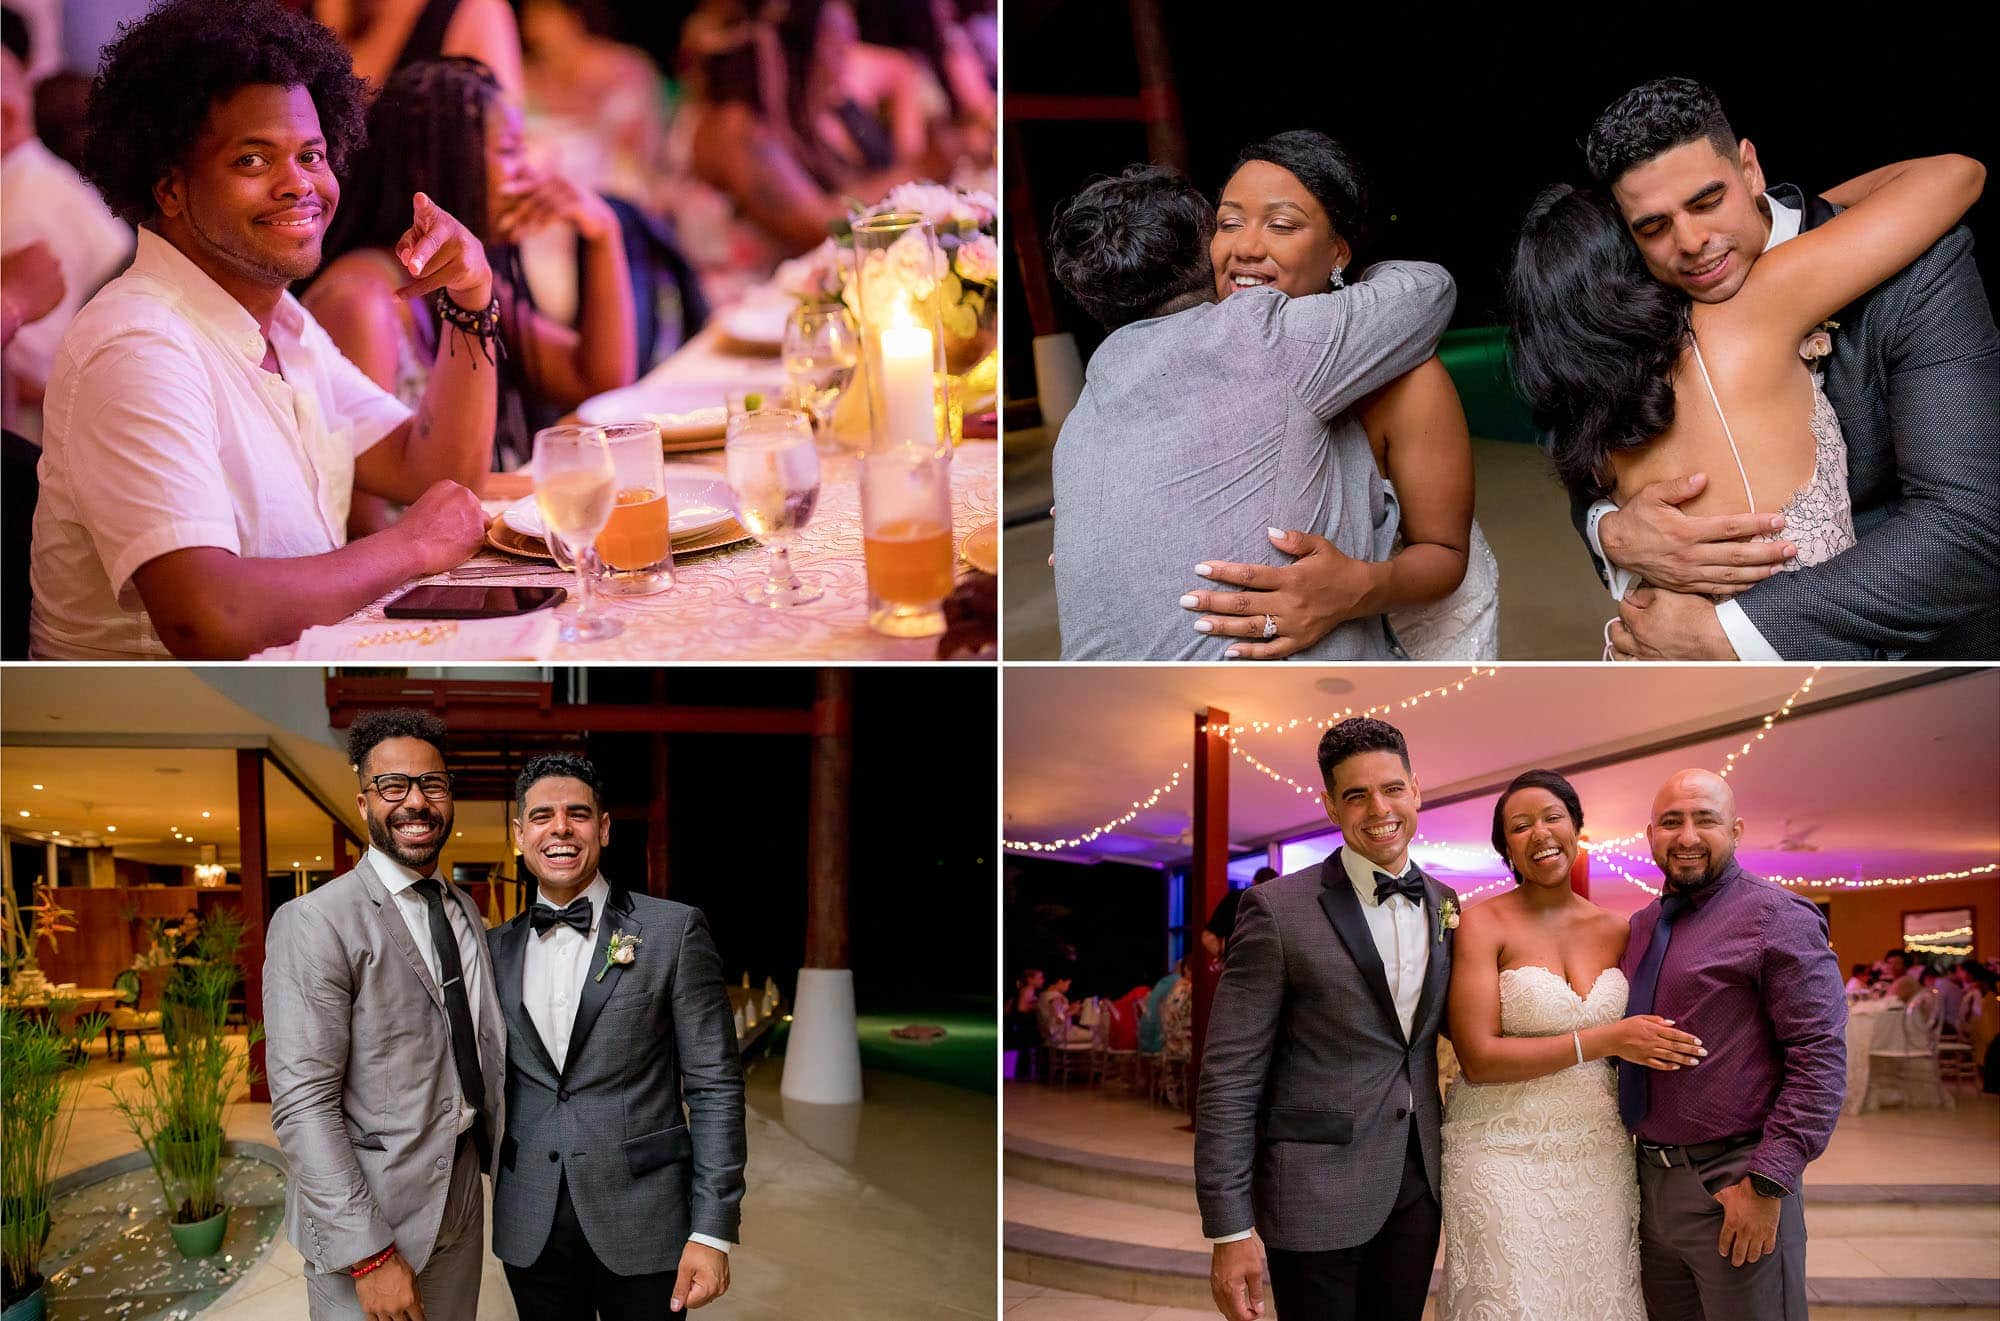 Special moments during the reception